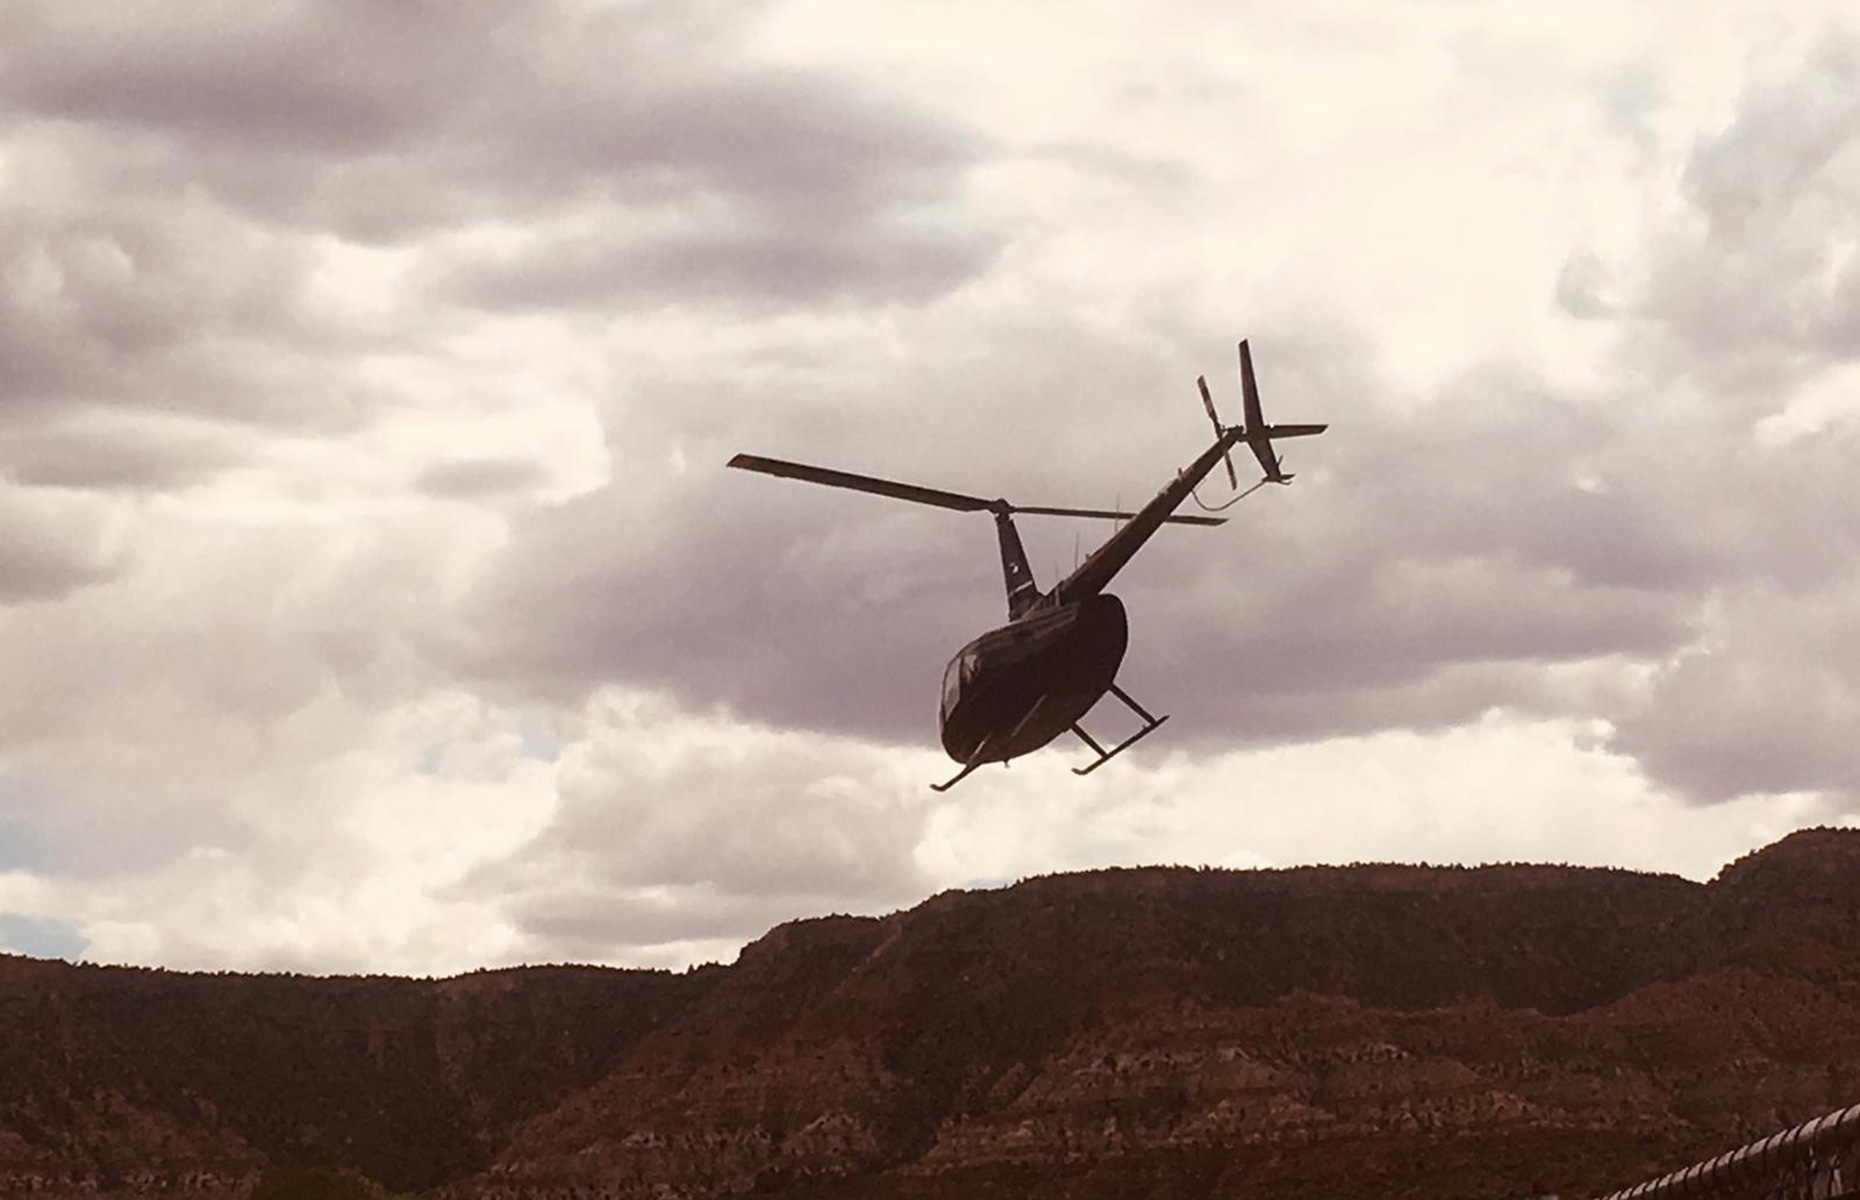 Zion helicopters tour